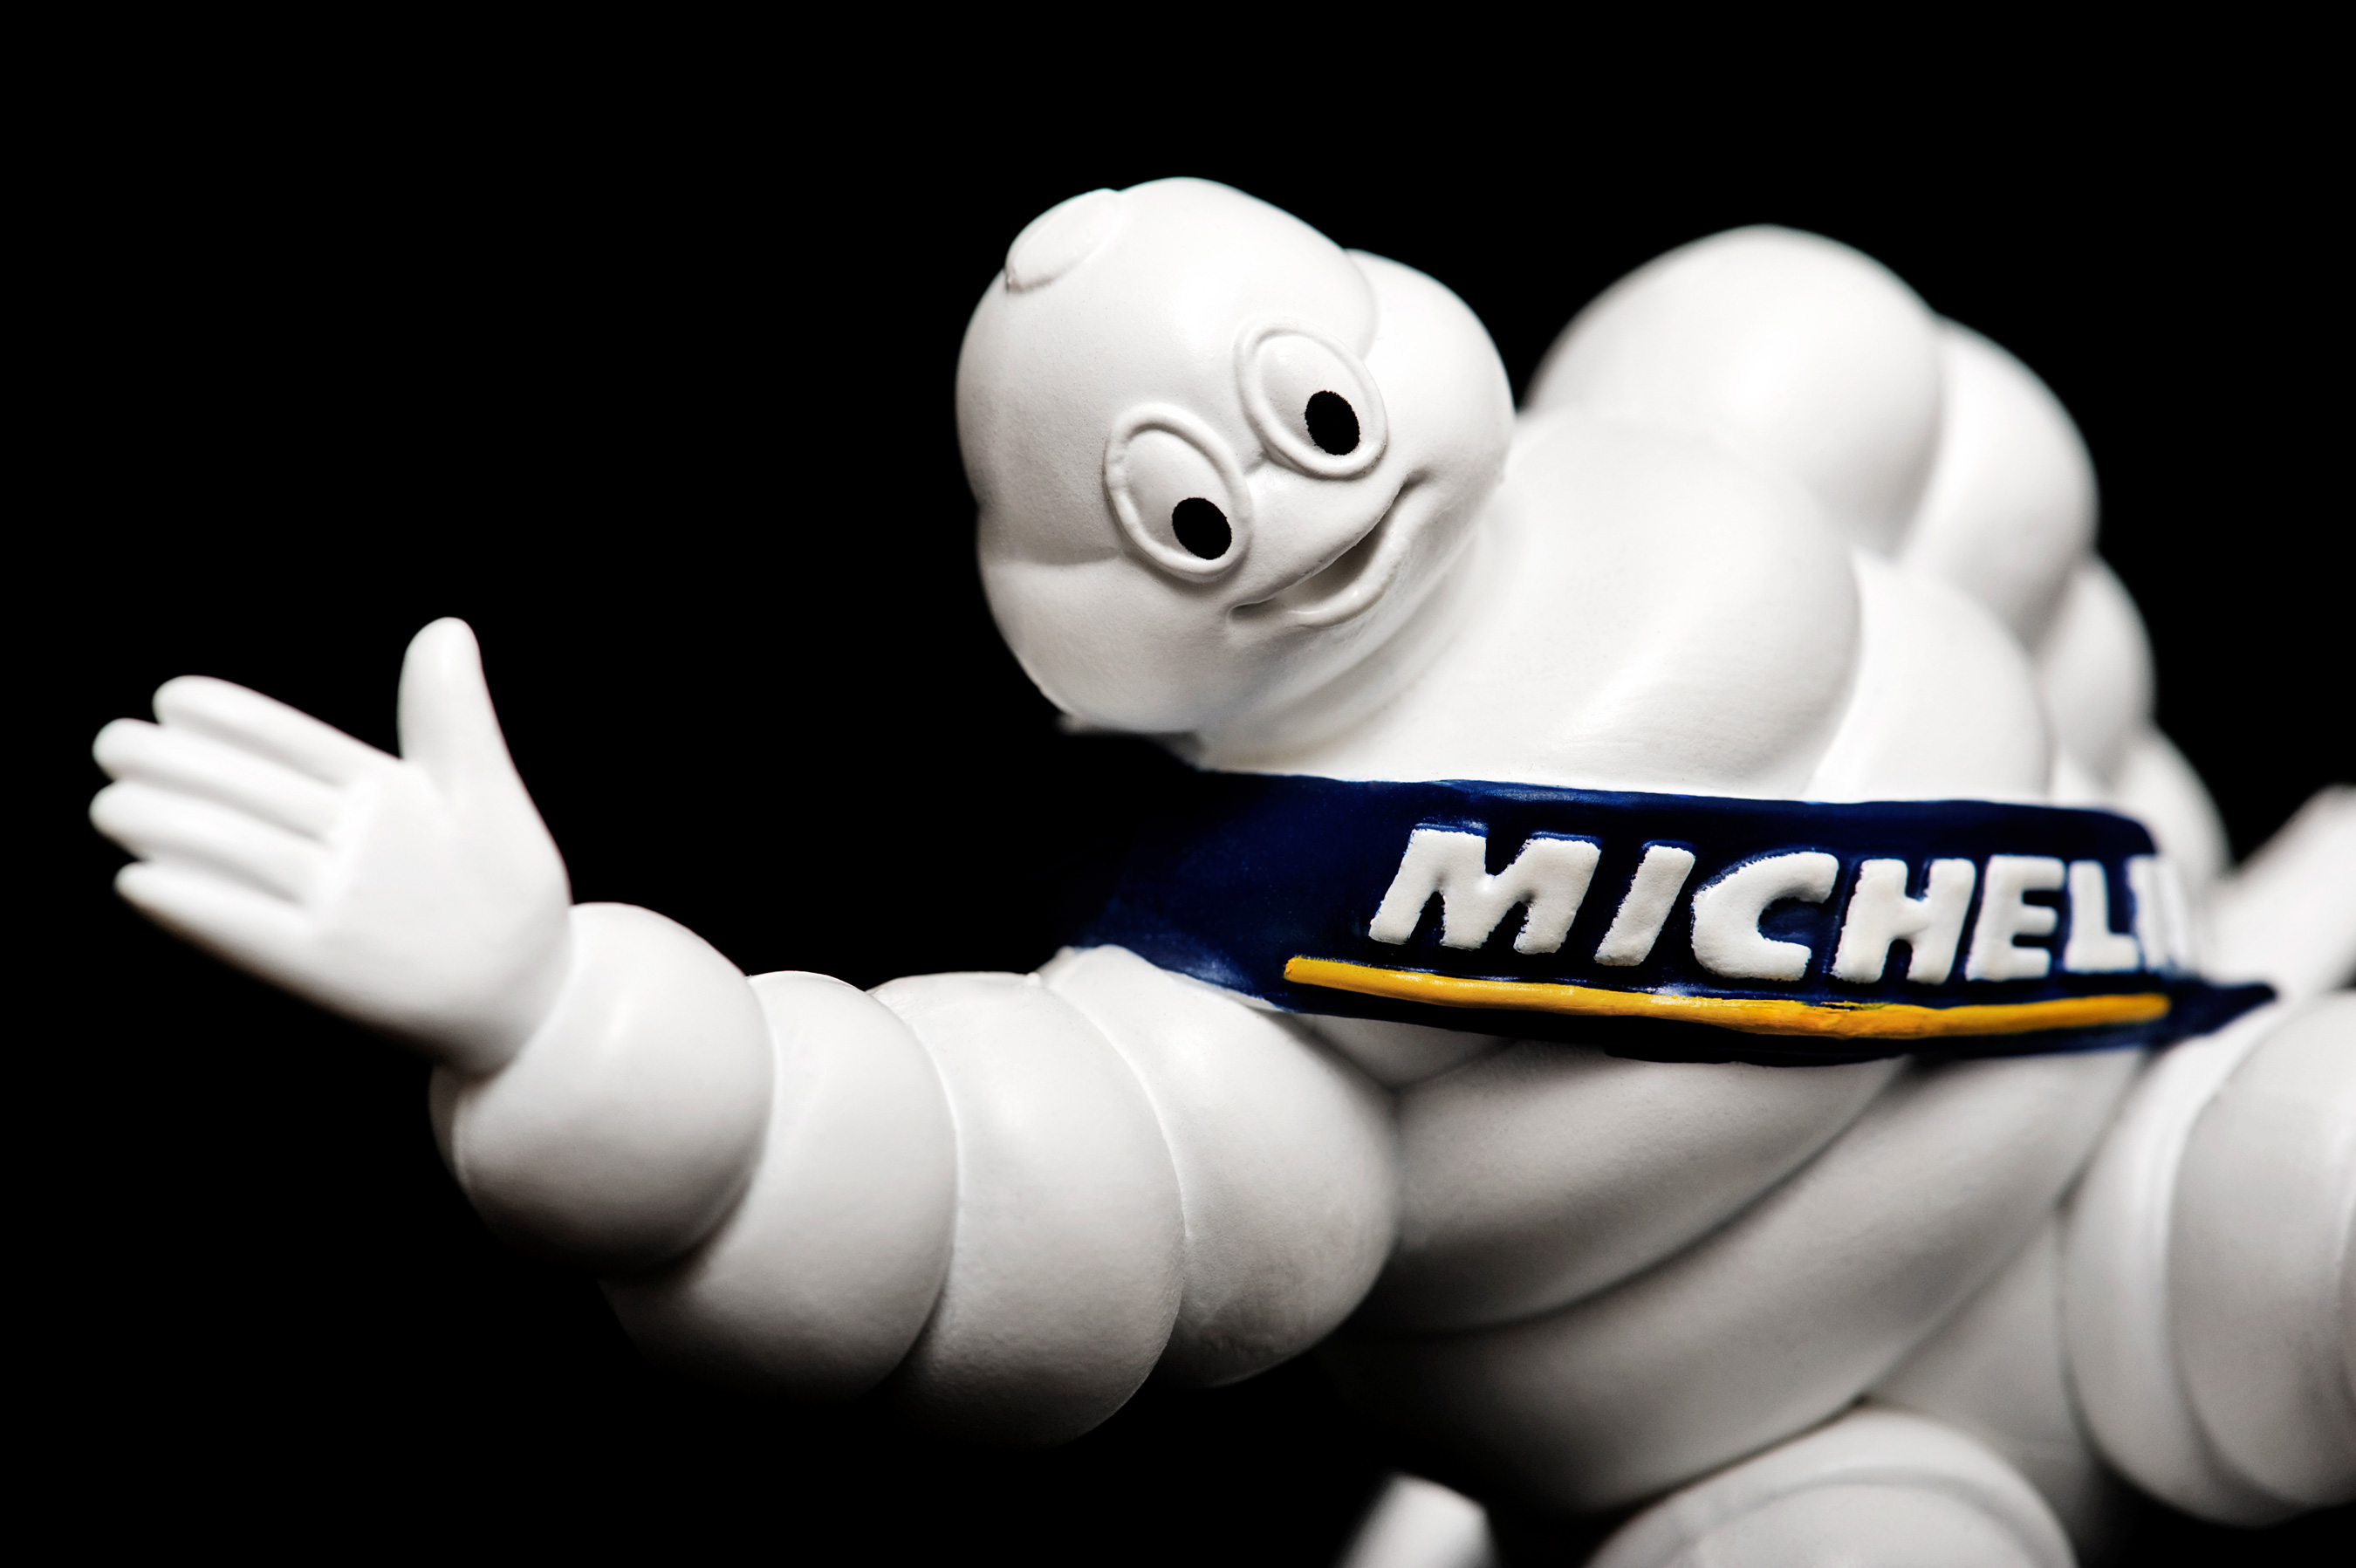 Matt-Stansfield-Photographer-lifestyle-michelin-still-life691